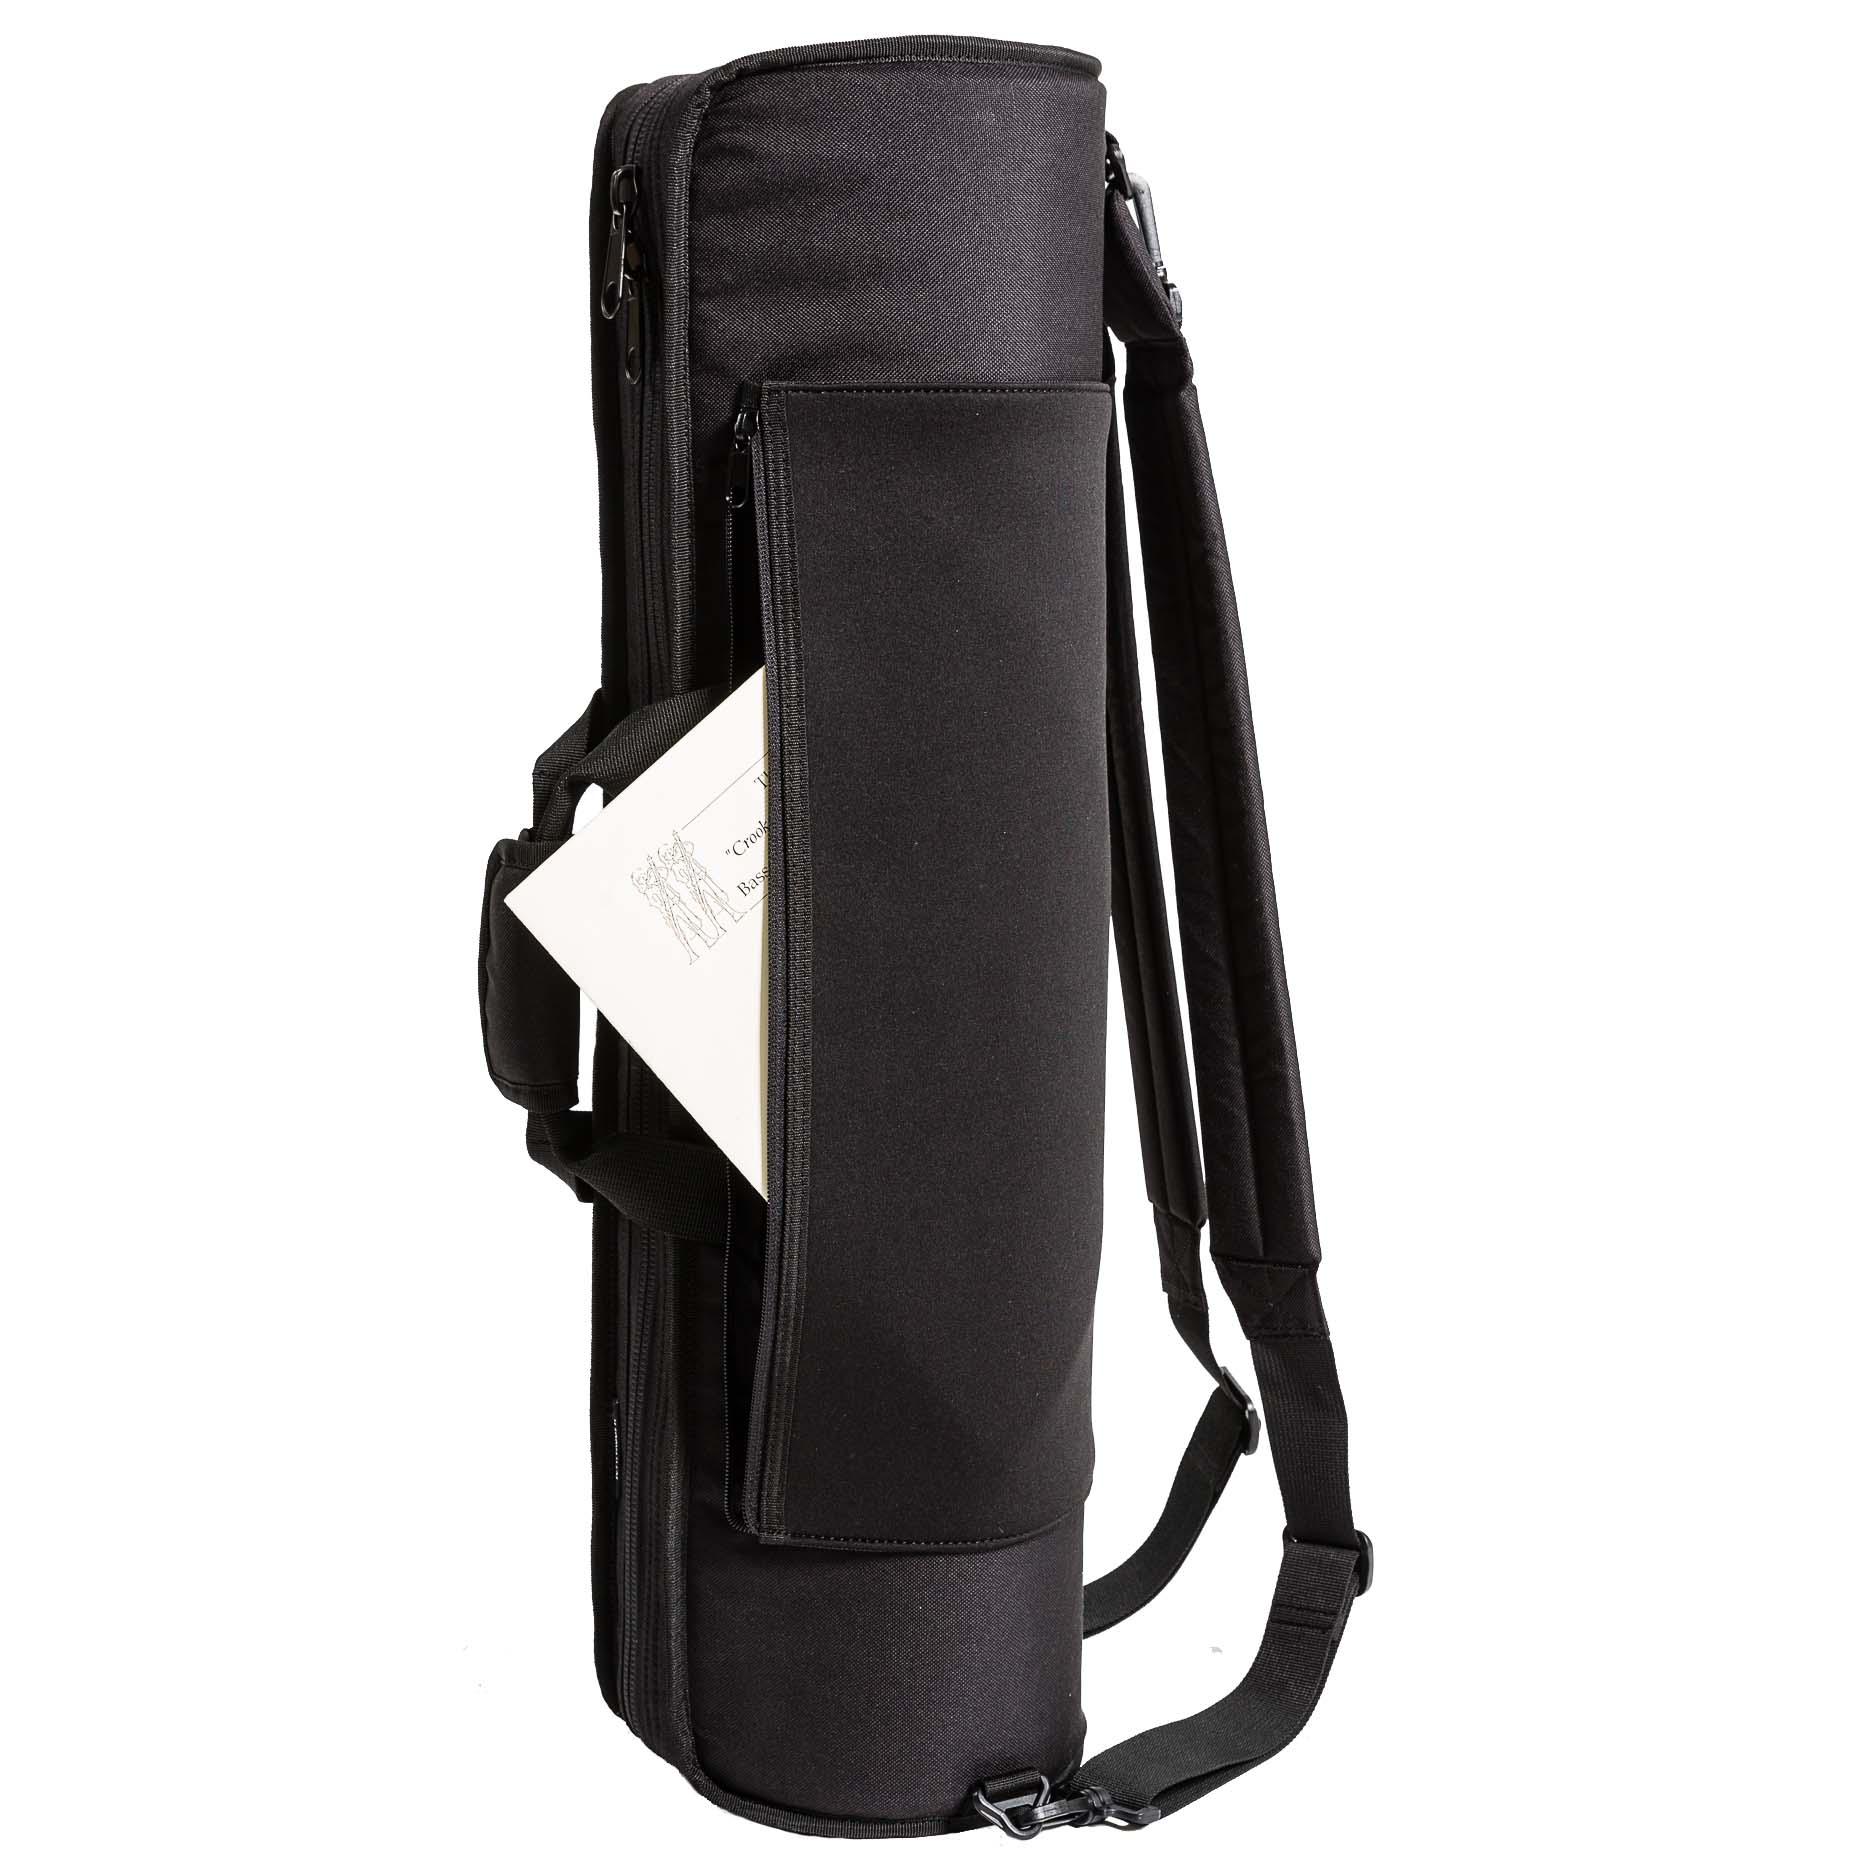 Bassoon Supplies - Cases